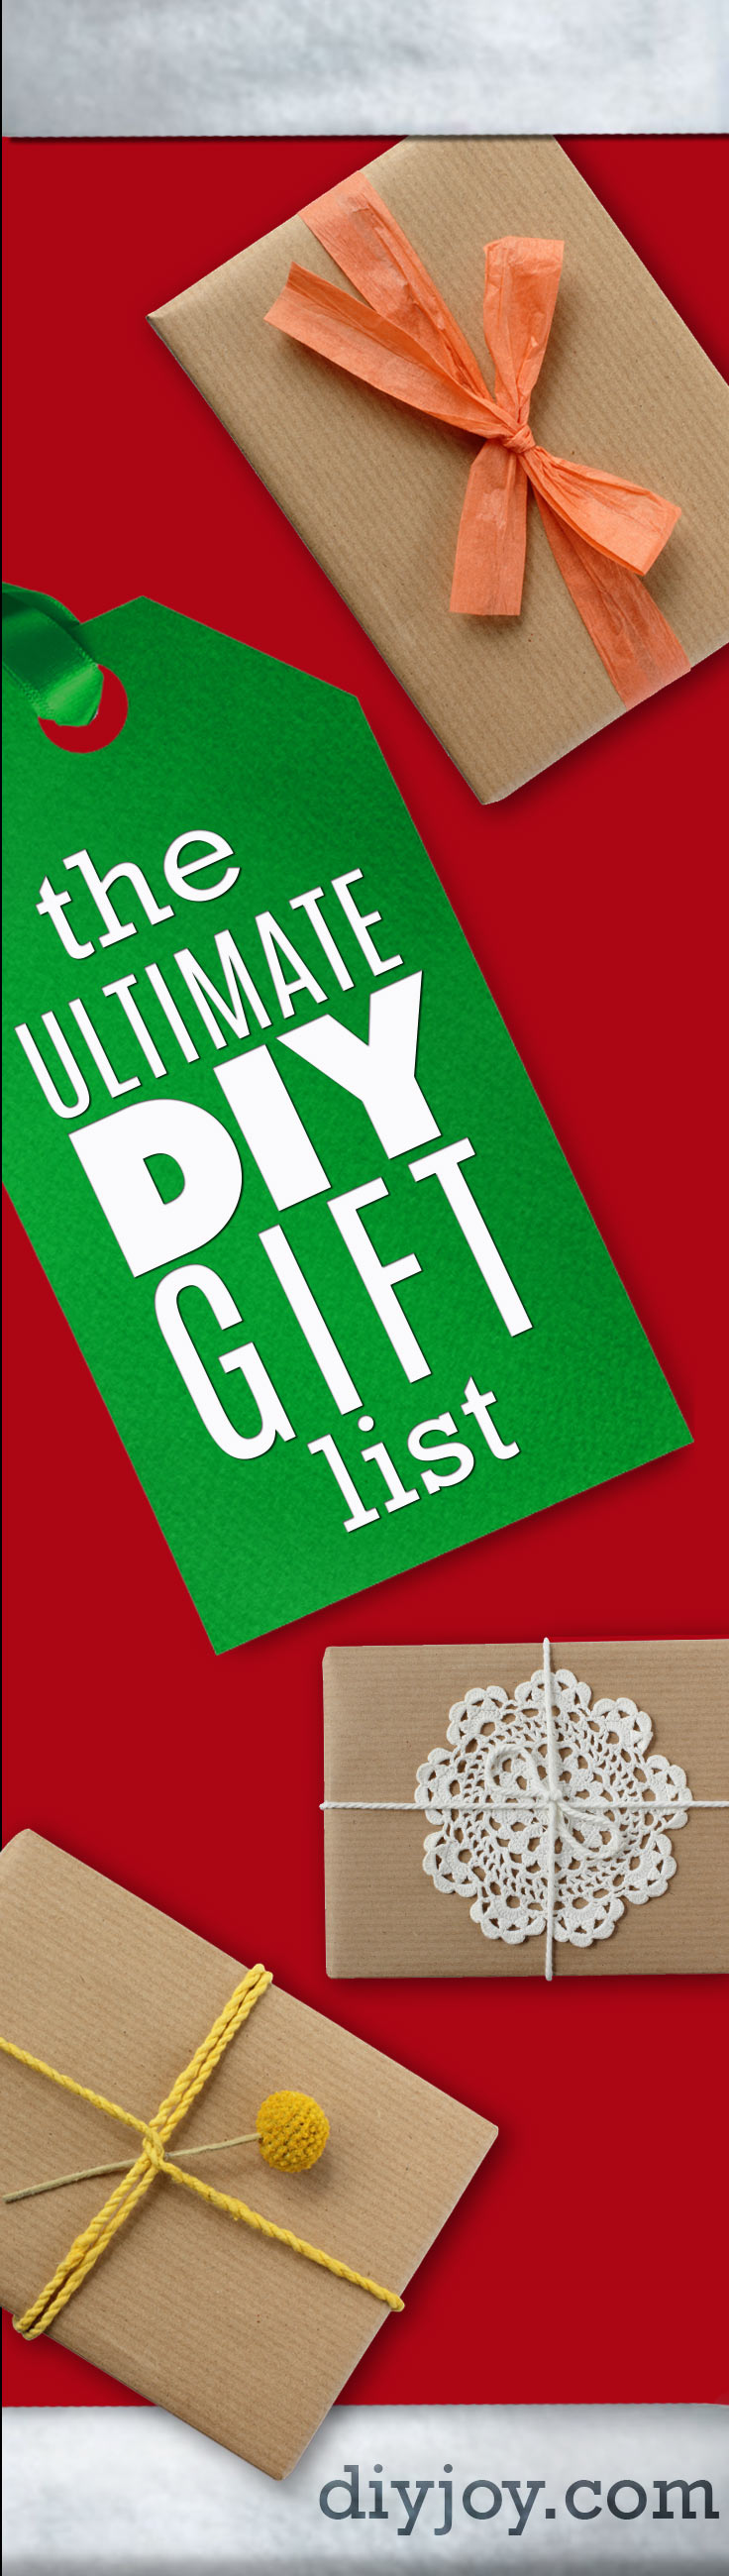 The ultimate diy christmas gifts list best diy gifts list christmas birthday and special occasion gift wrapping ideas solutioingenieria Choice Image